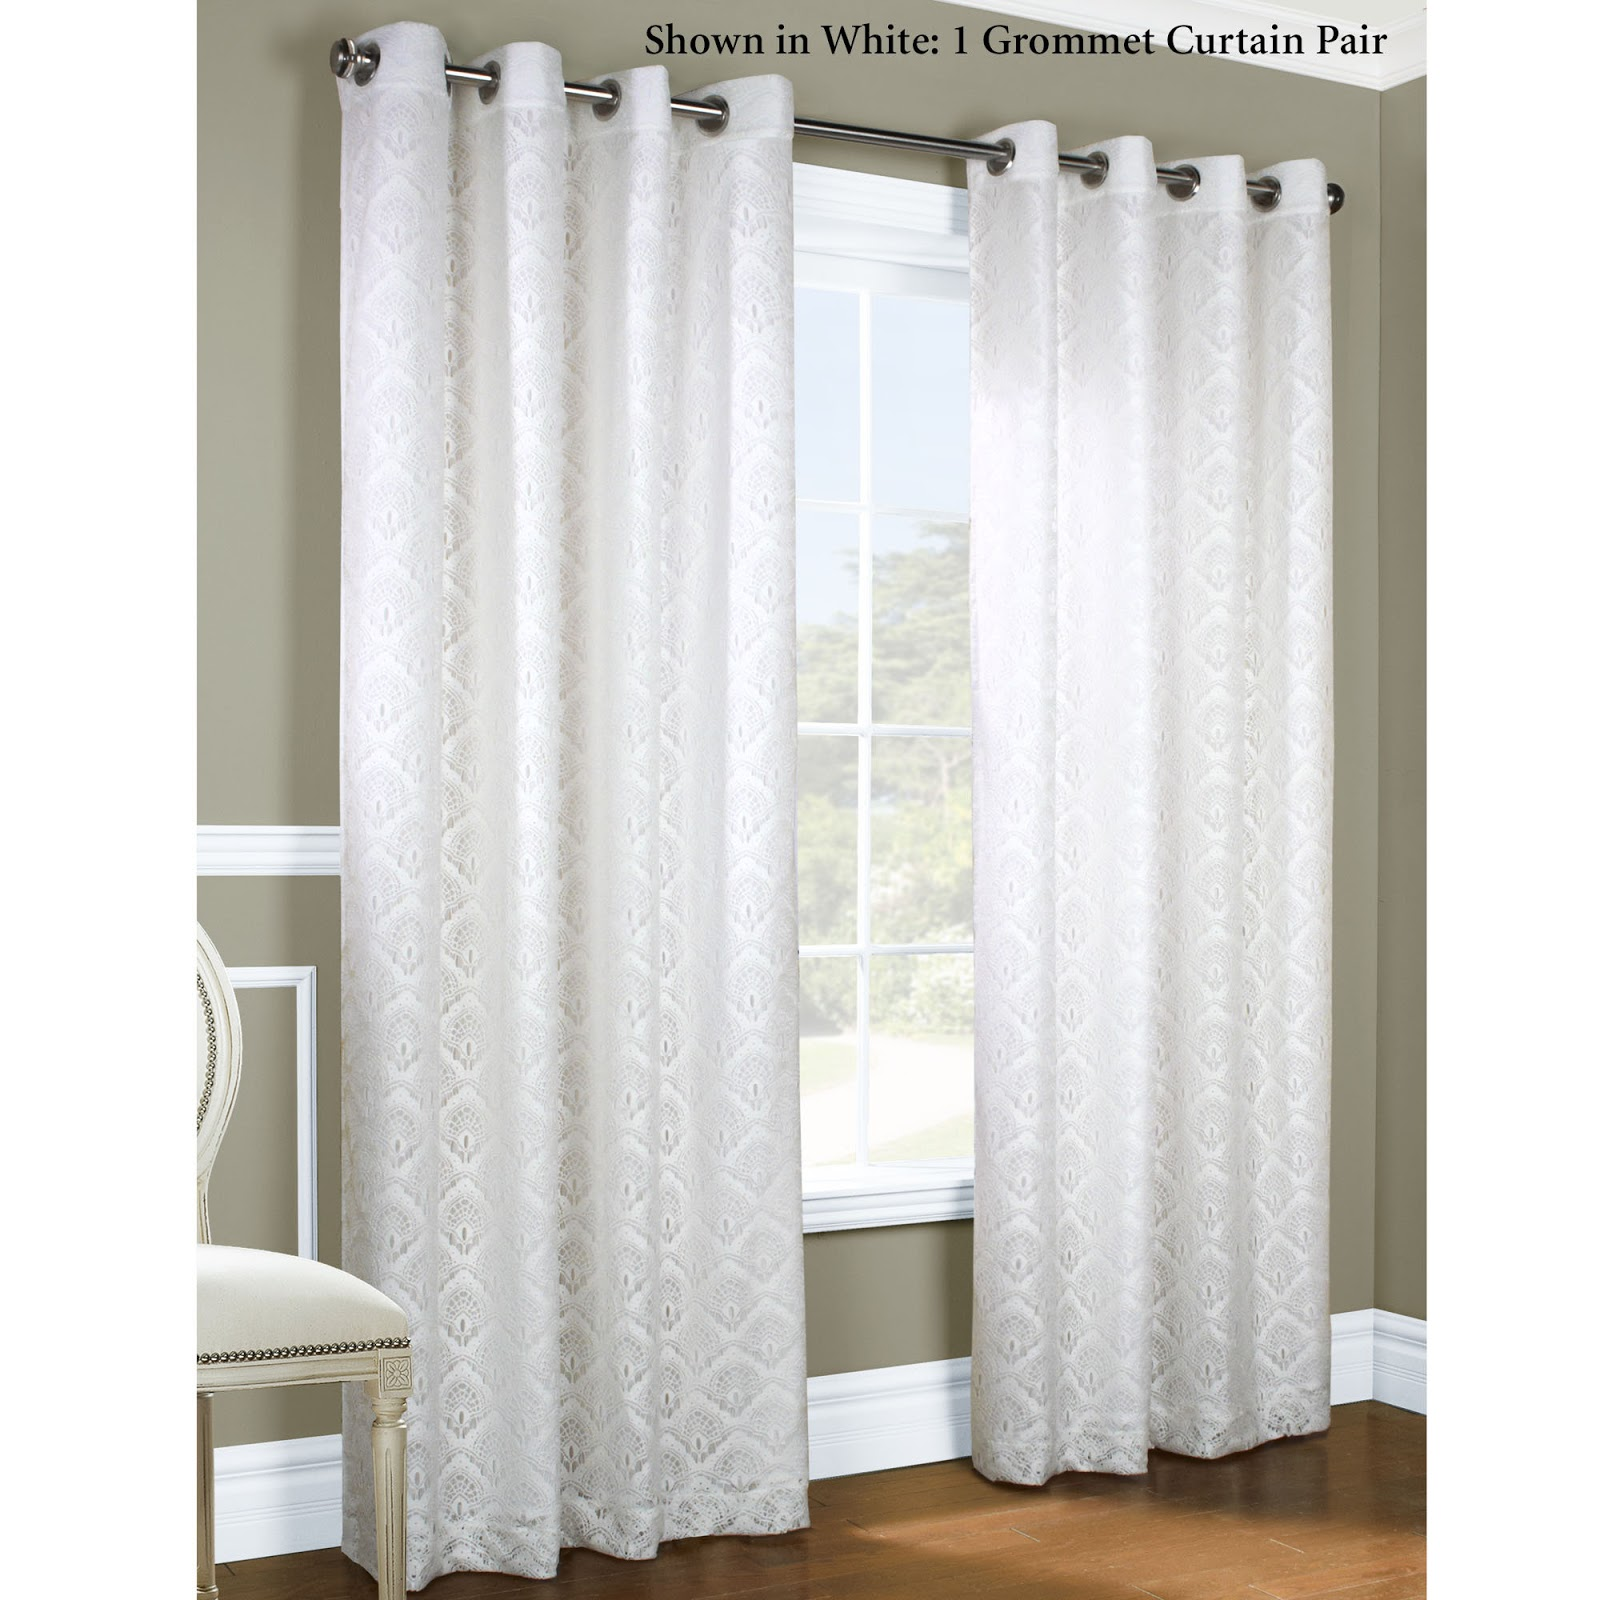 Black Zebra Curtains Blackout And Sheer Backing For Blinds Curtain